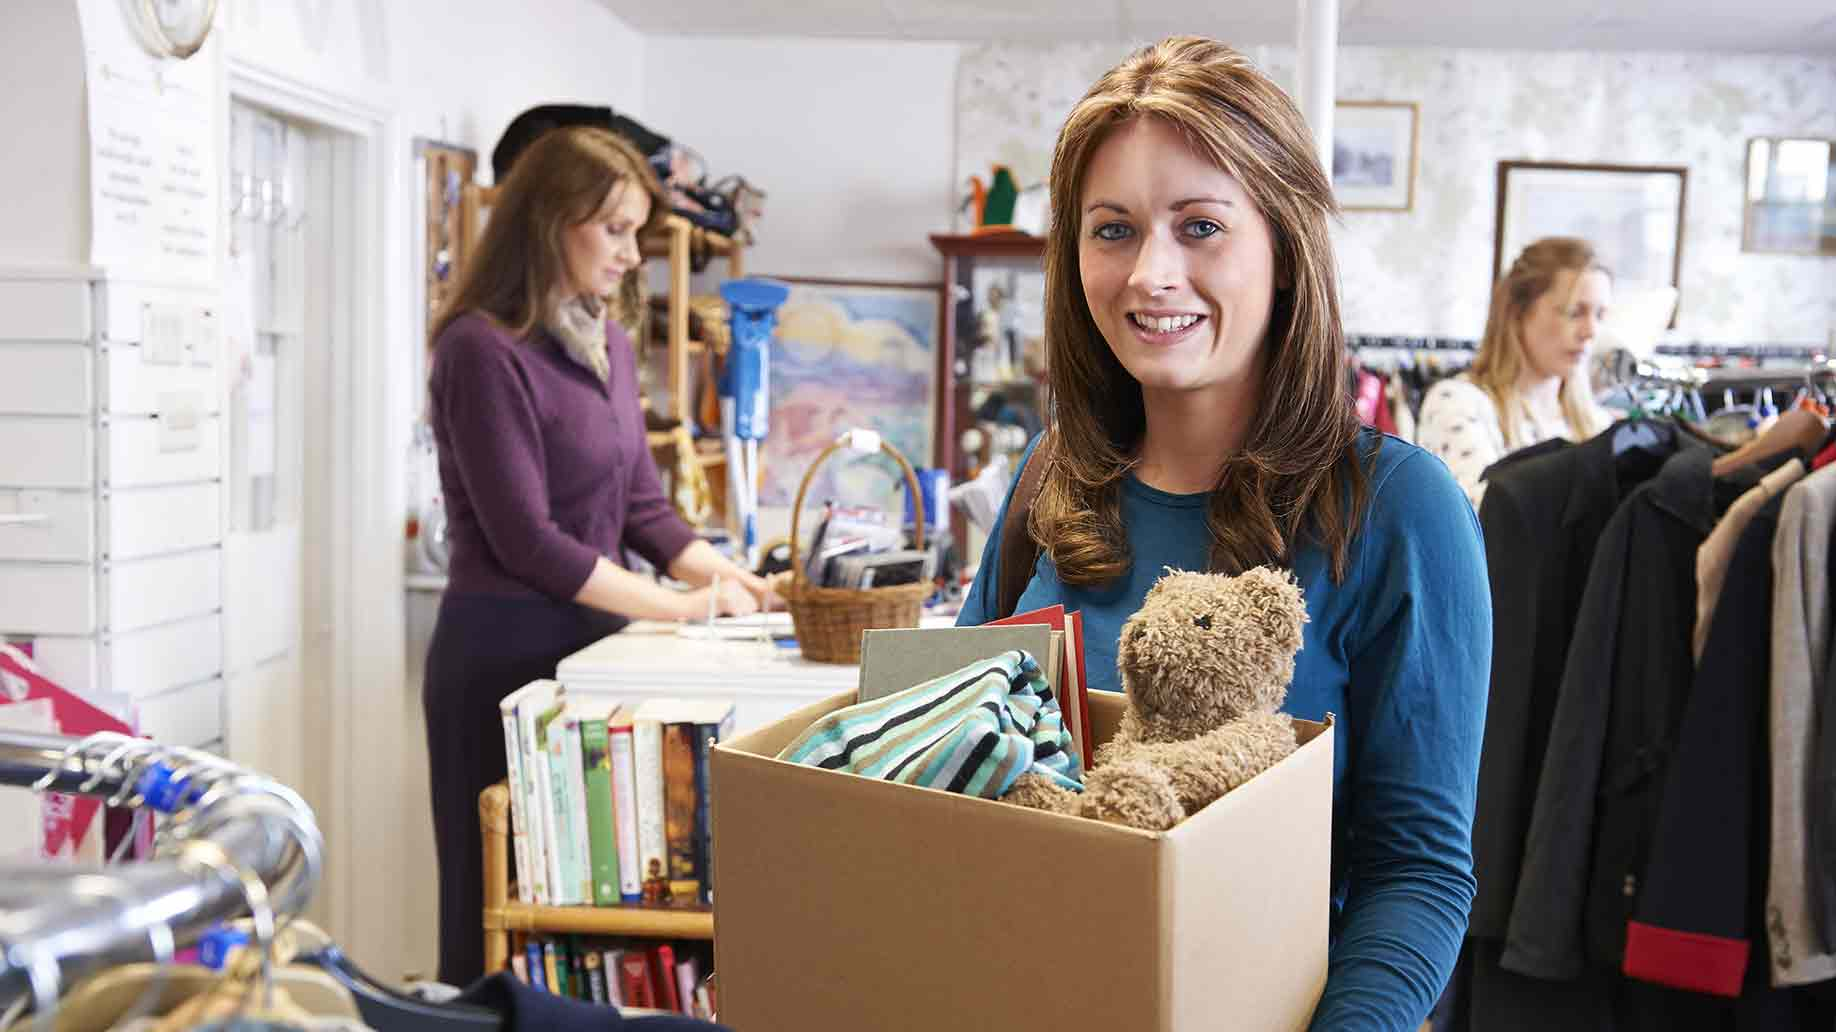 woman donating unwanted items to a charity shop